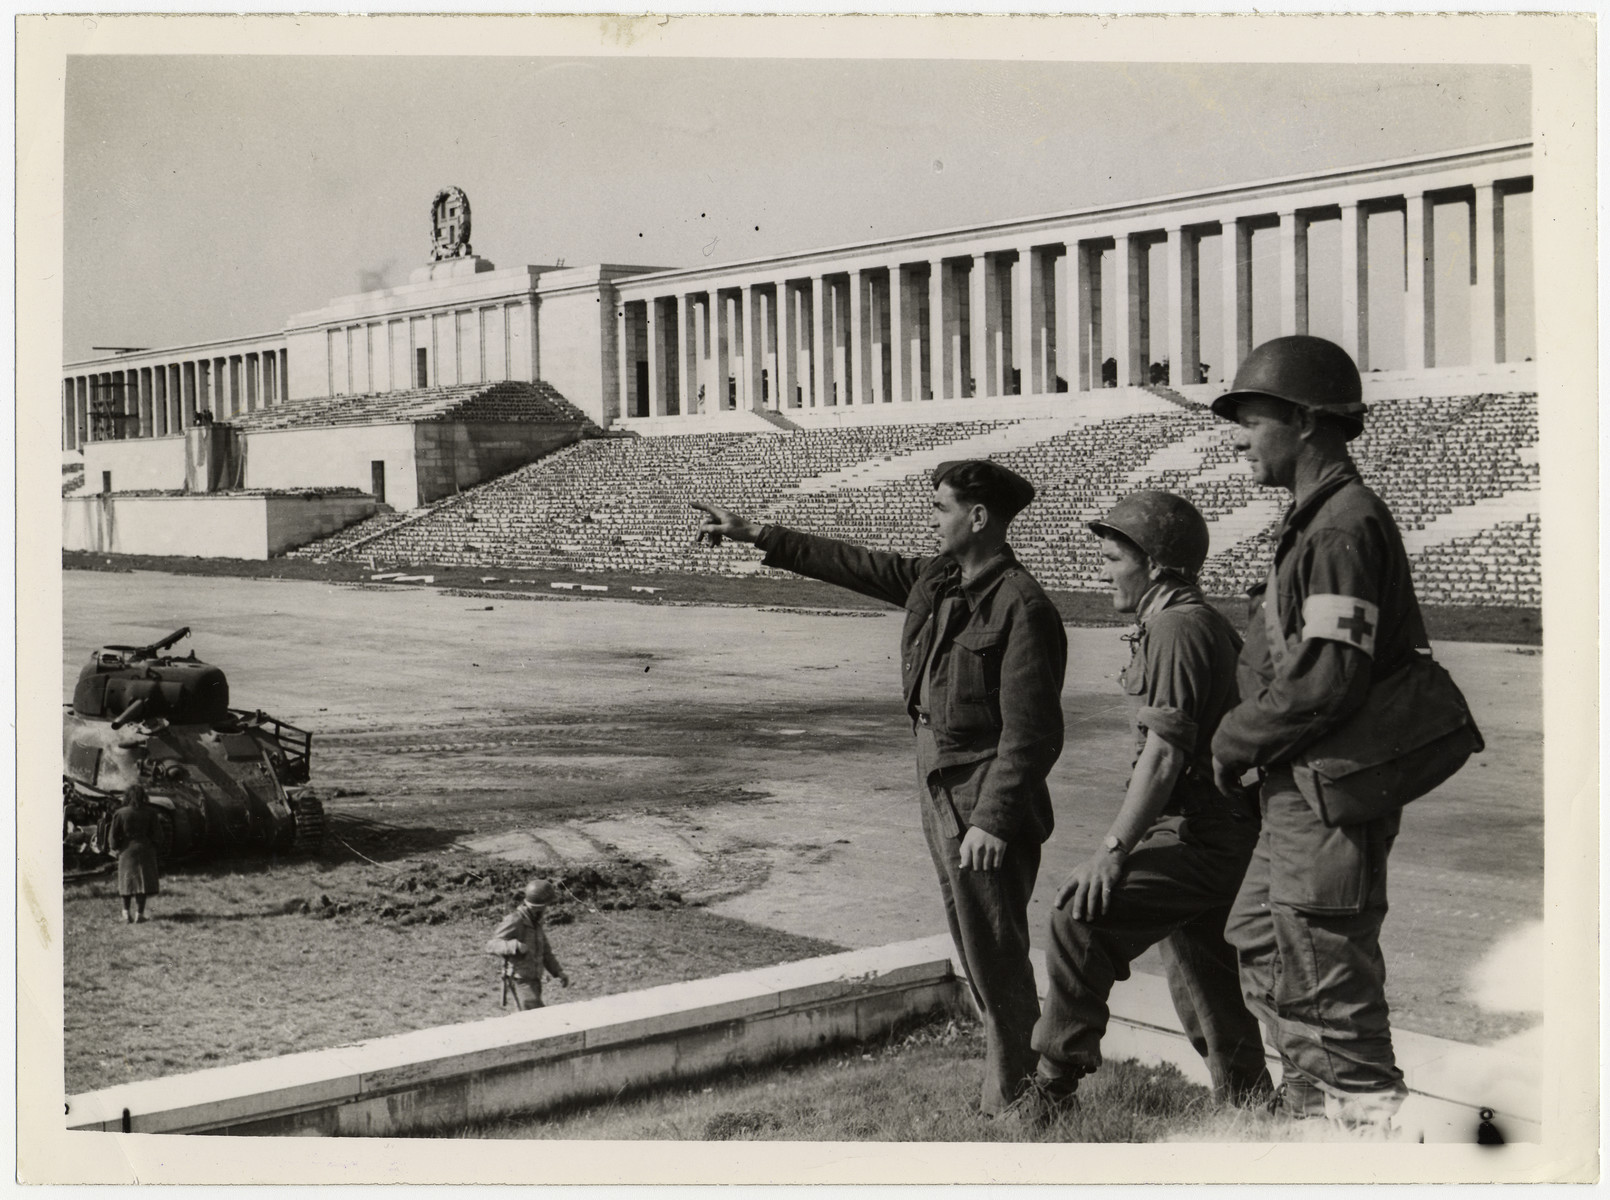 """A liberated British prisoner-of-war shows the Nuremberg stadium to two American soldiers.  Original caption reads:  """"LIBERATED BRITISH PRISONER SHOWS NUREMBERG SIGHTS TO YANKS FROM HITLER'S STADIUM. Captured at Dunkirk 5 years ago, a British soldier now liberated points out landmarks of Nuremberg from the Egpelin Stadium to Pte Dewey Serrogins of Sataria, Miss.Abd Pte William Layton 1111 Red Bud Ave. St Lois, Miss. (left to right) The stadium was used for great Nazi part rallies and Hitler often spoke from the Rostrum seen in the picture."""""""